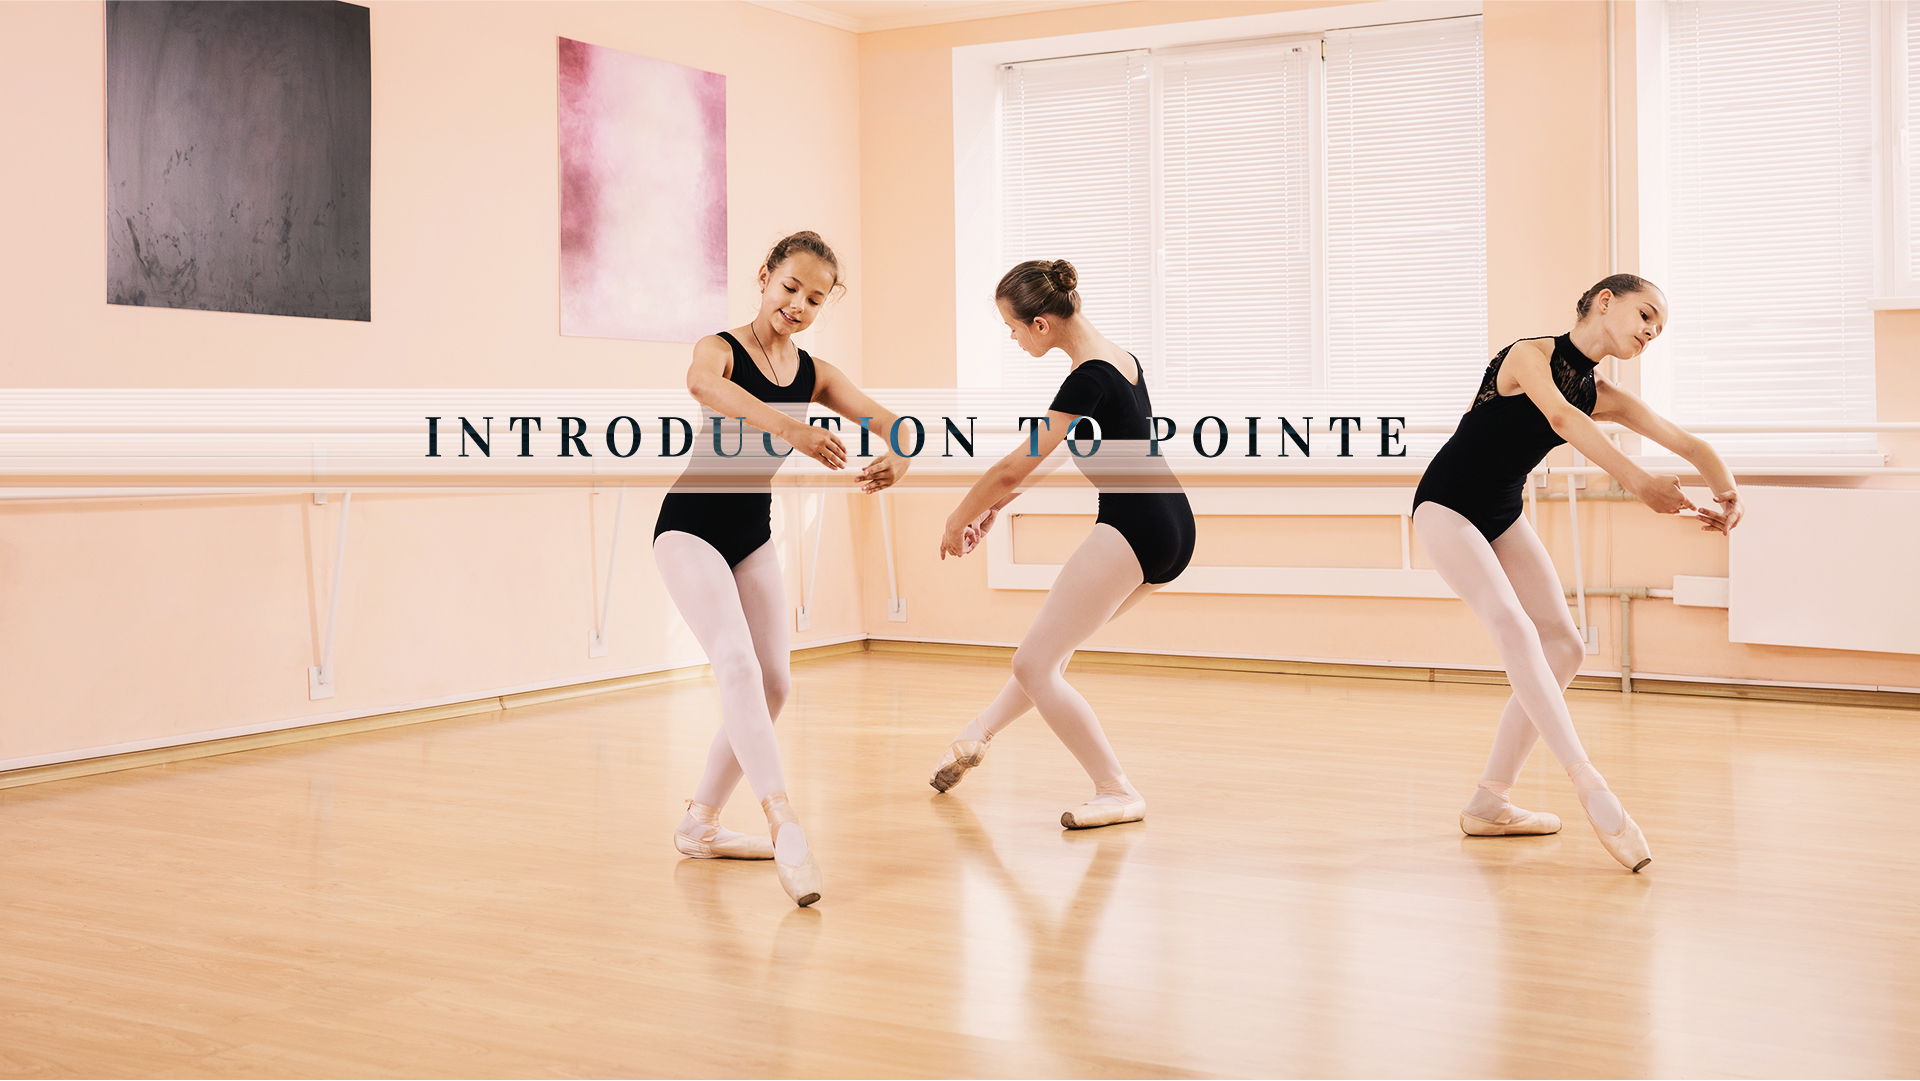 3cfa1cb385a49 Once a dancer has completed pre-pointe training, there is a transitional  class needed before full pointe training can begin. This is an introduction  (or ...